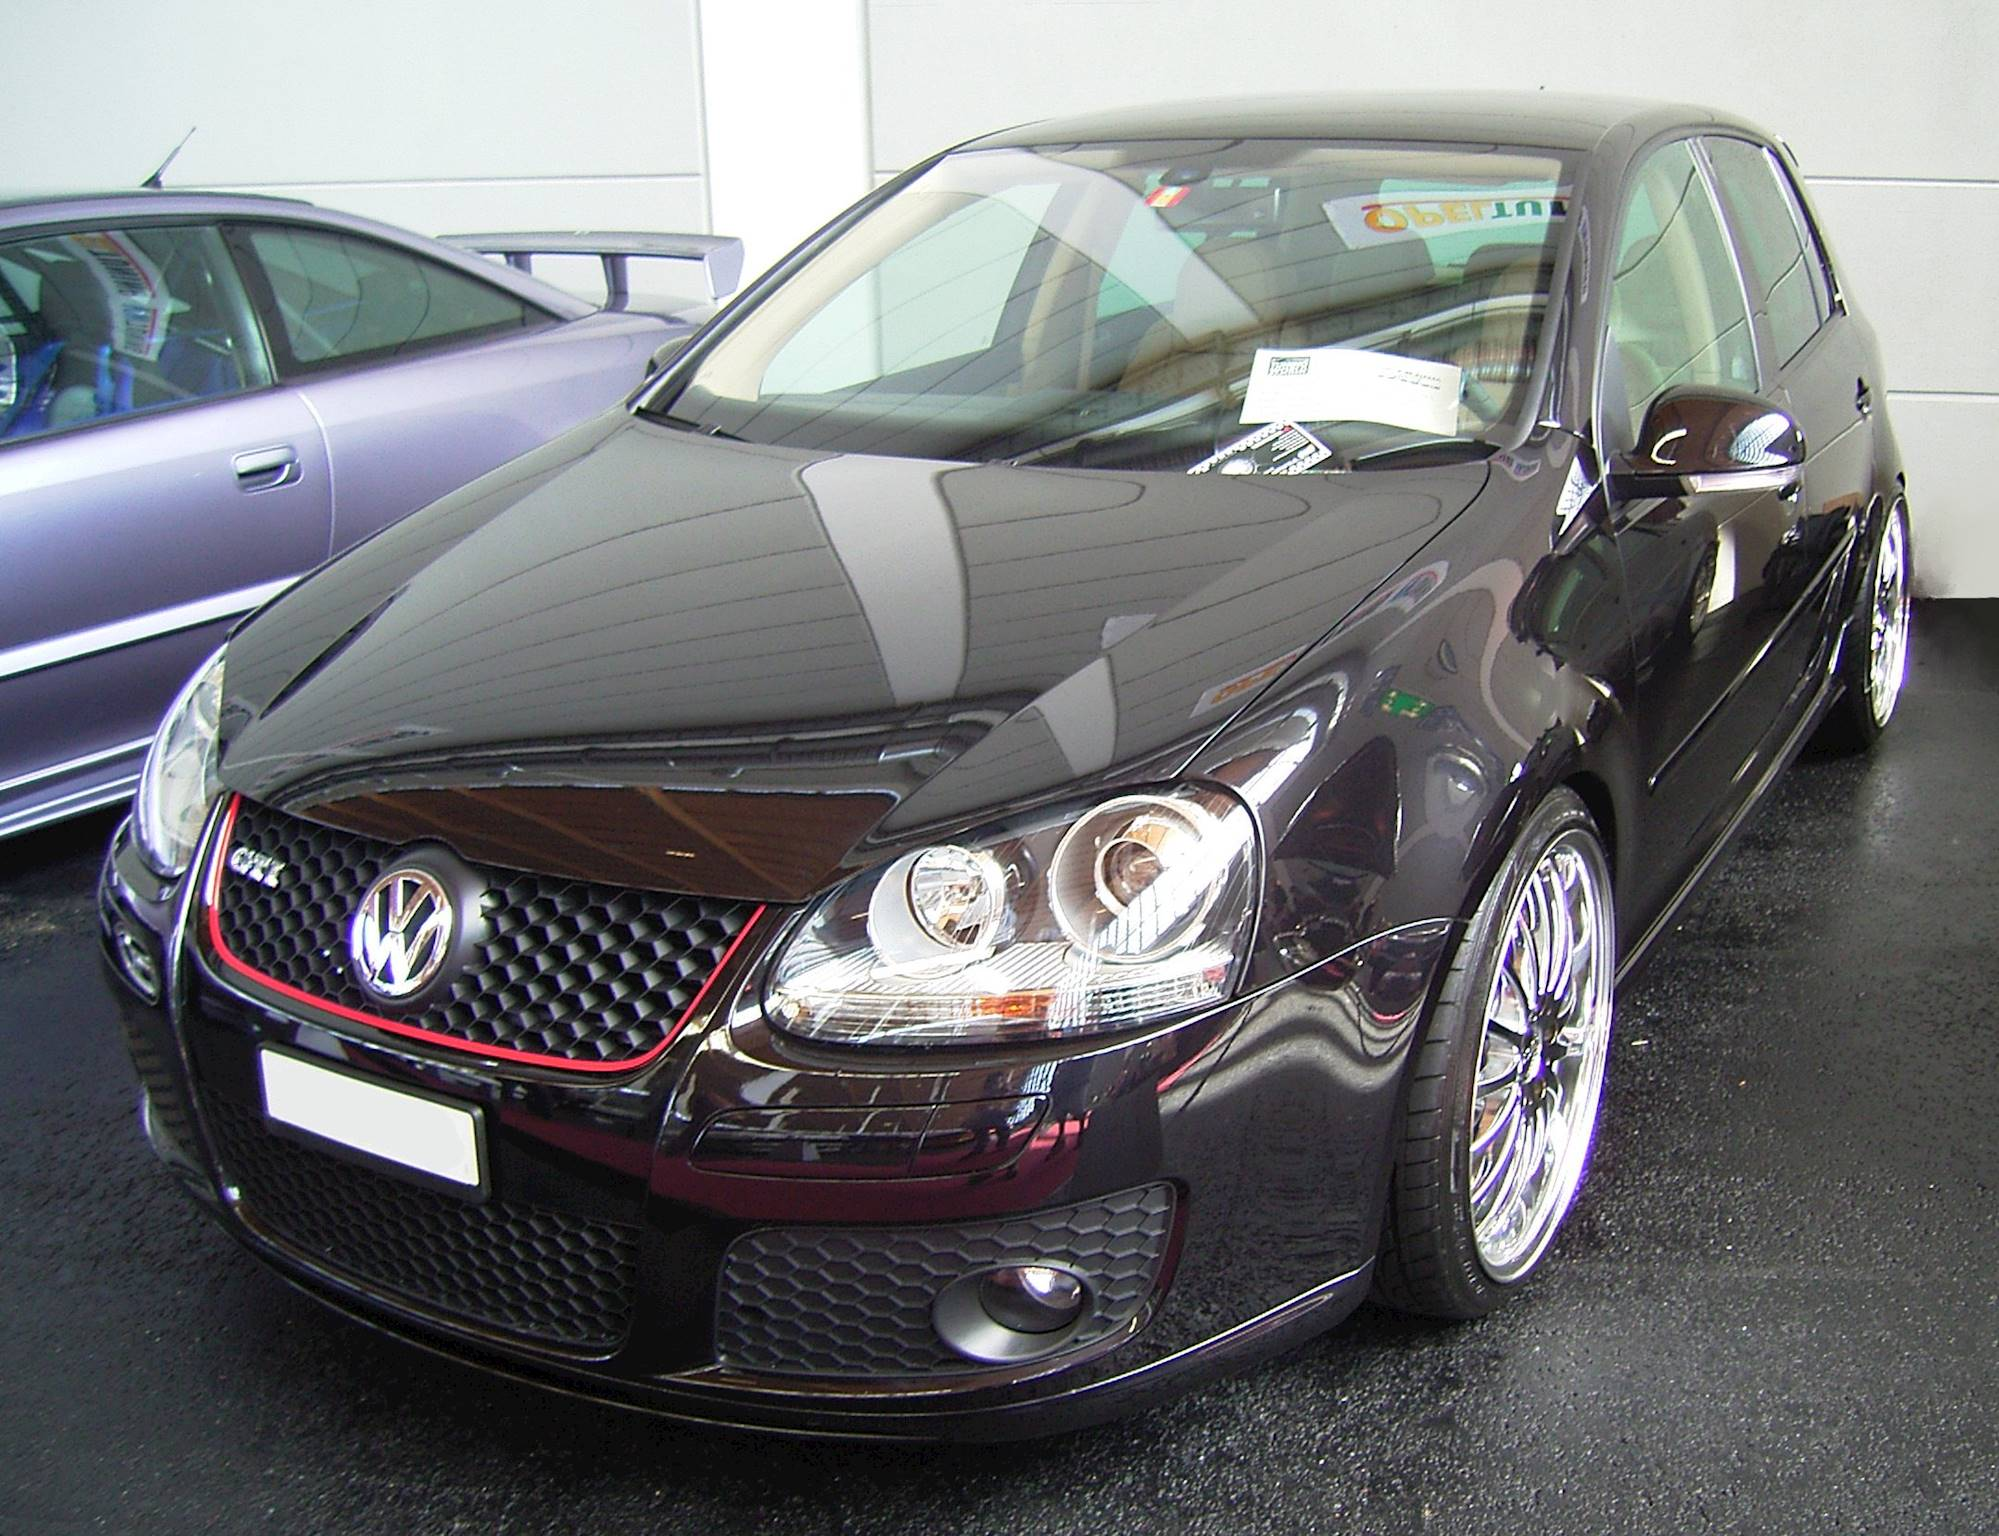 2006 volkswagen golf gti 1 8t 2dr hatchback 1 8l turbo manual. Black Bedroom Furniture Sets. Home Design Ideas